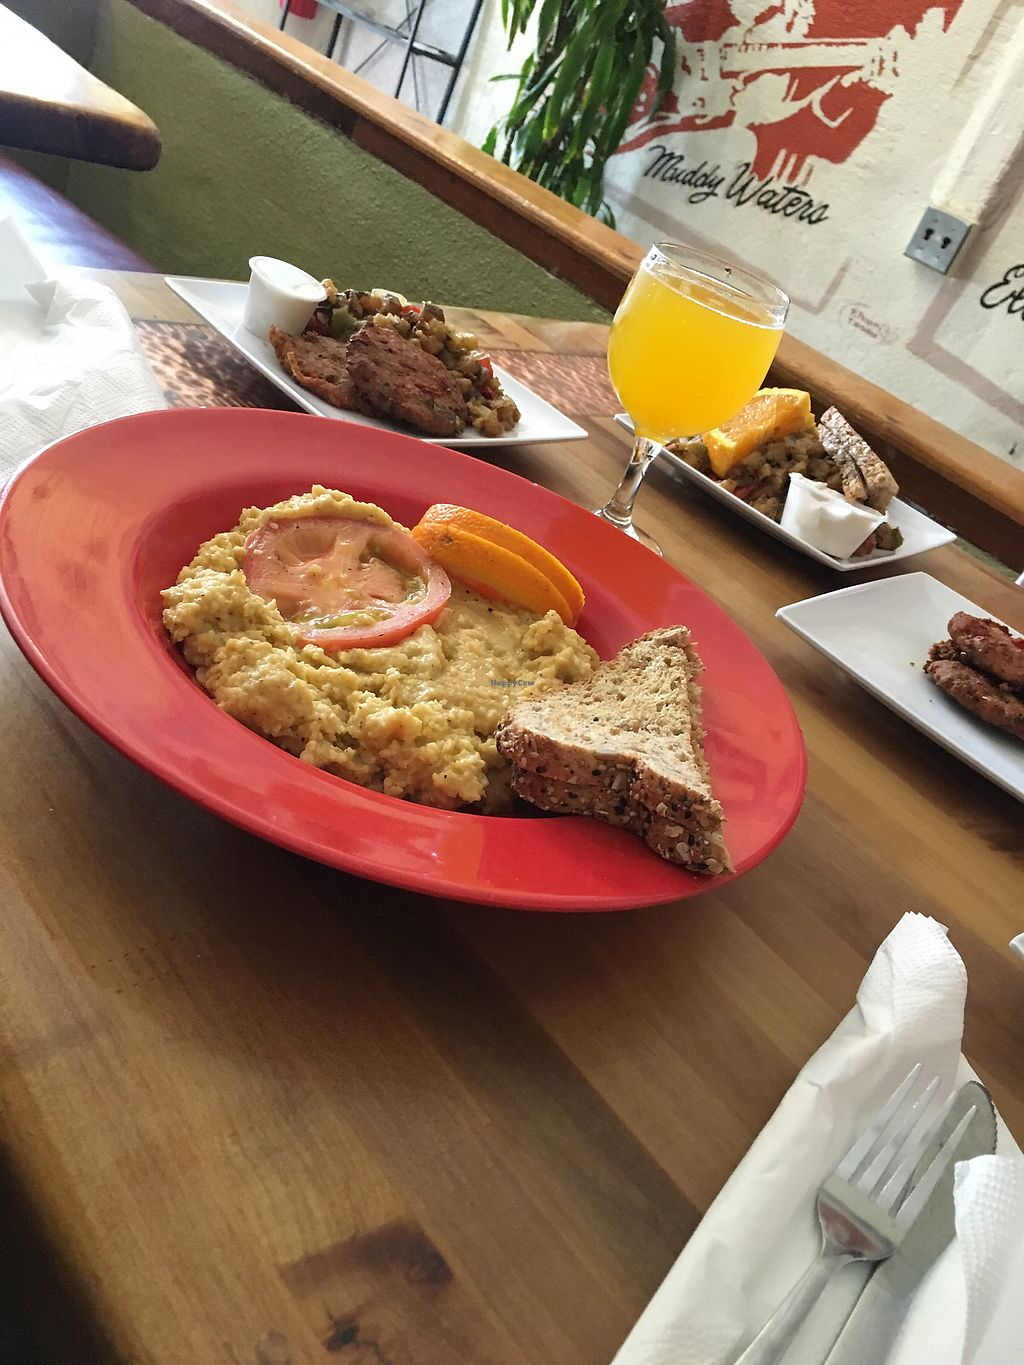 """Photo of Souley Vegan  by <a href=""""/members/profile/tylerhebron"""">tylerhebron</a> <br/>Cheese Grits, House made Sausage, and Potatoes  <br/> August 8, 2017  - <a href='/contact/abuse/image/18109/290619'>Report</a>"""